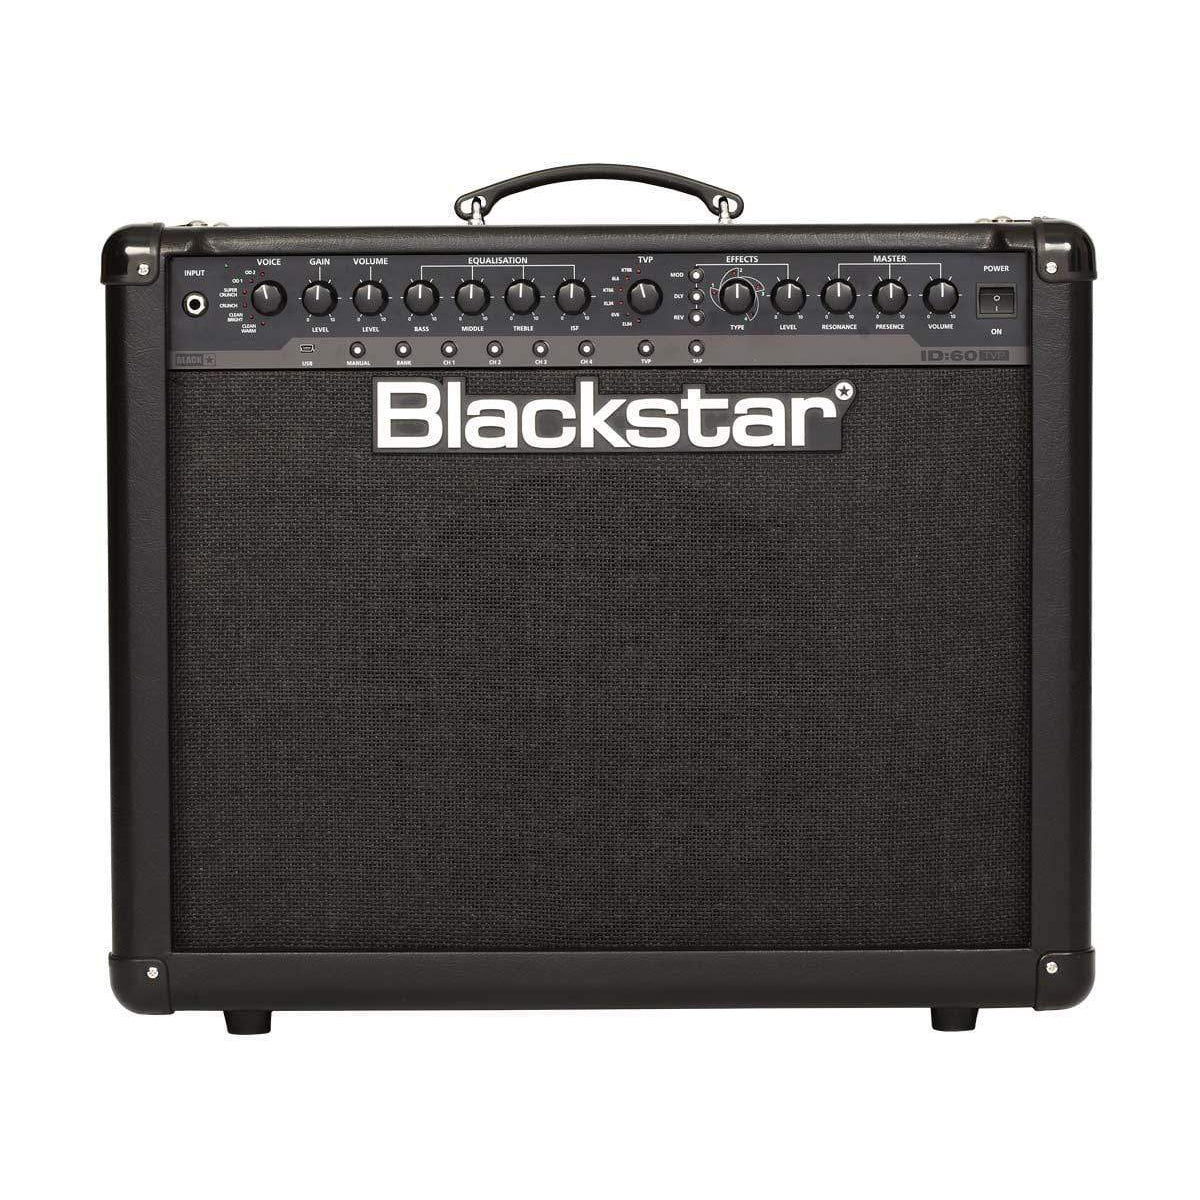 BlackStar String Instruments Blackstar ID:60 TVP Combo Amplifier - Black